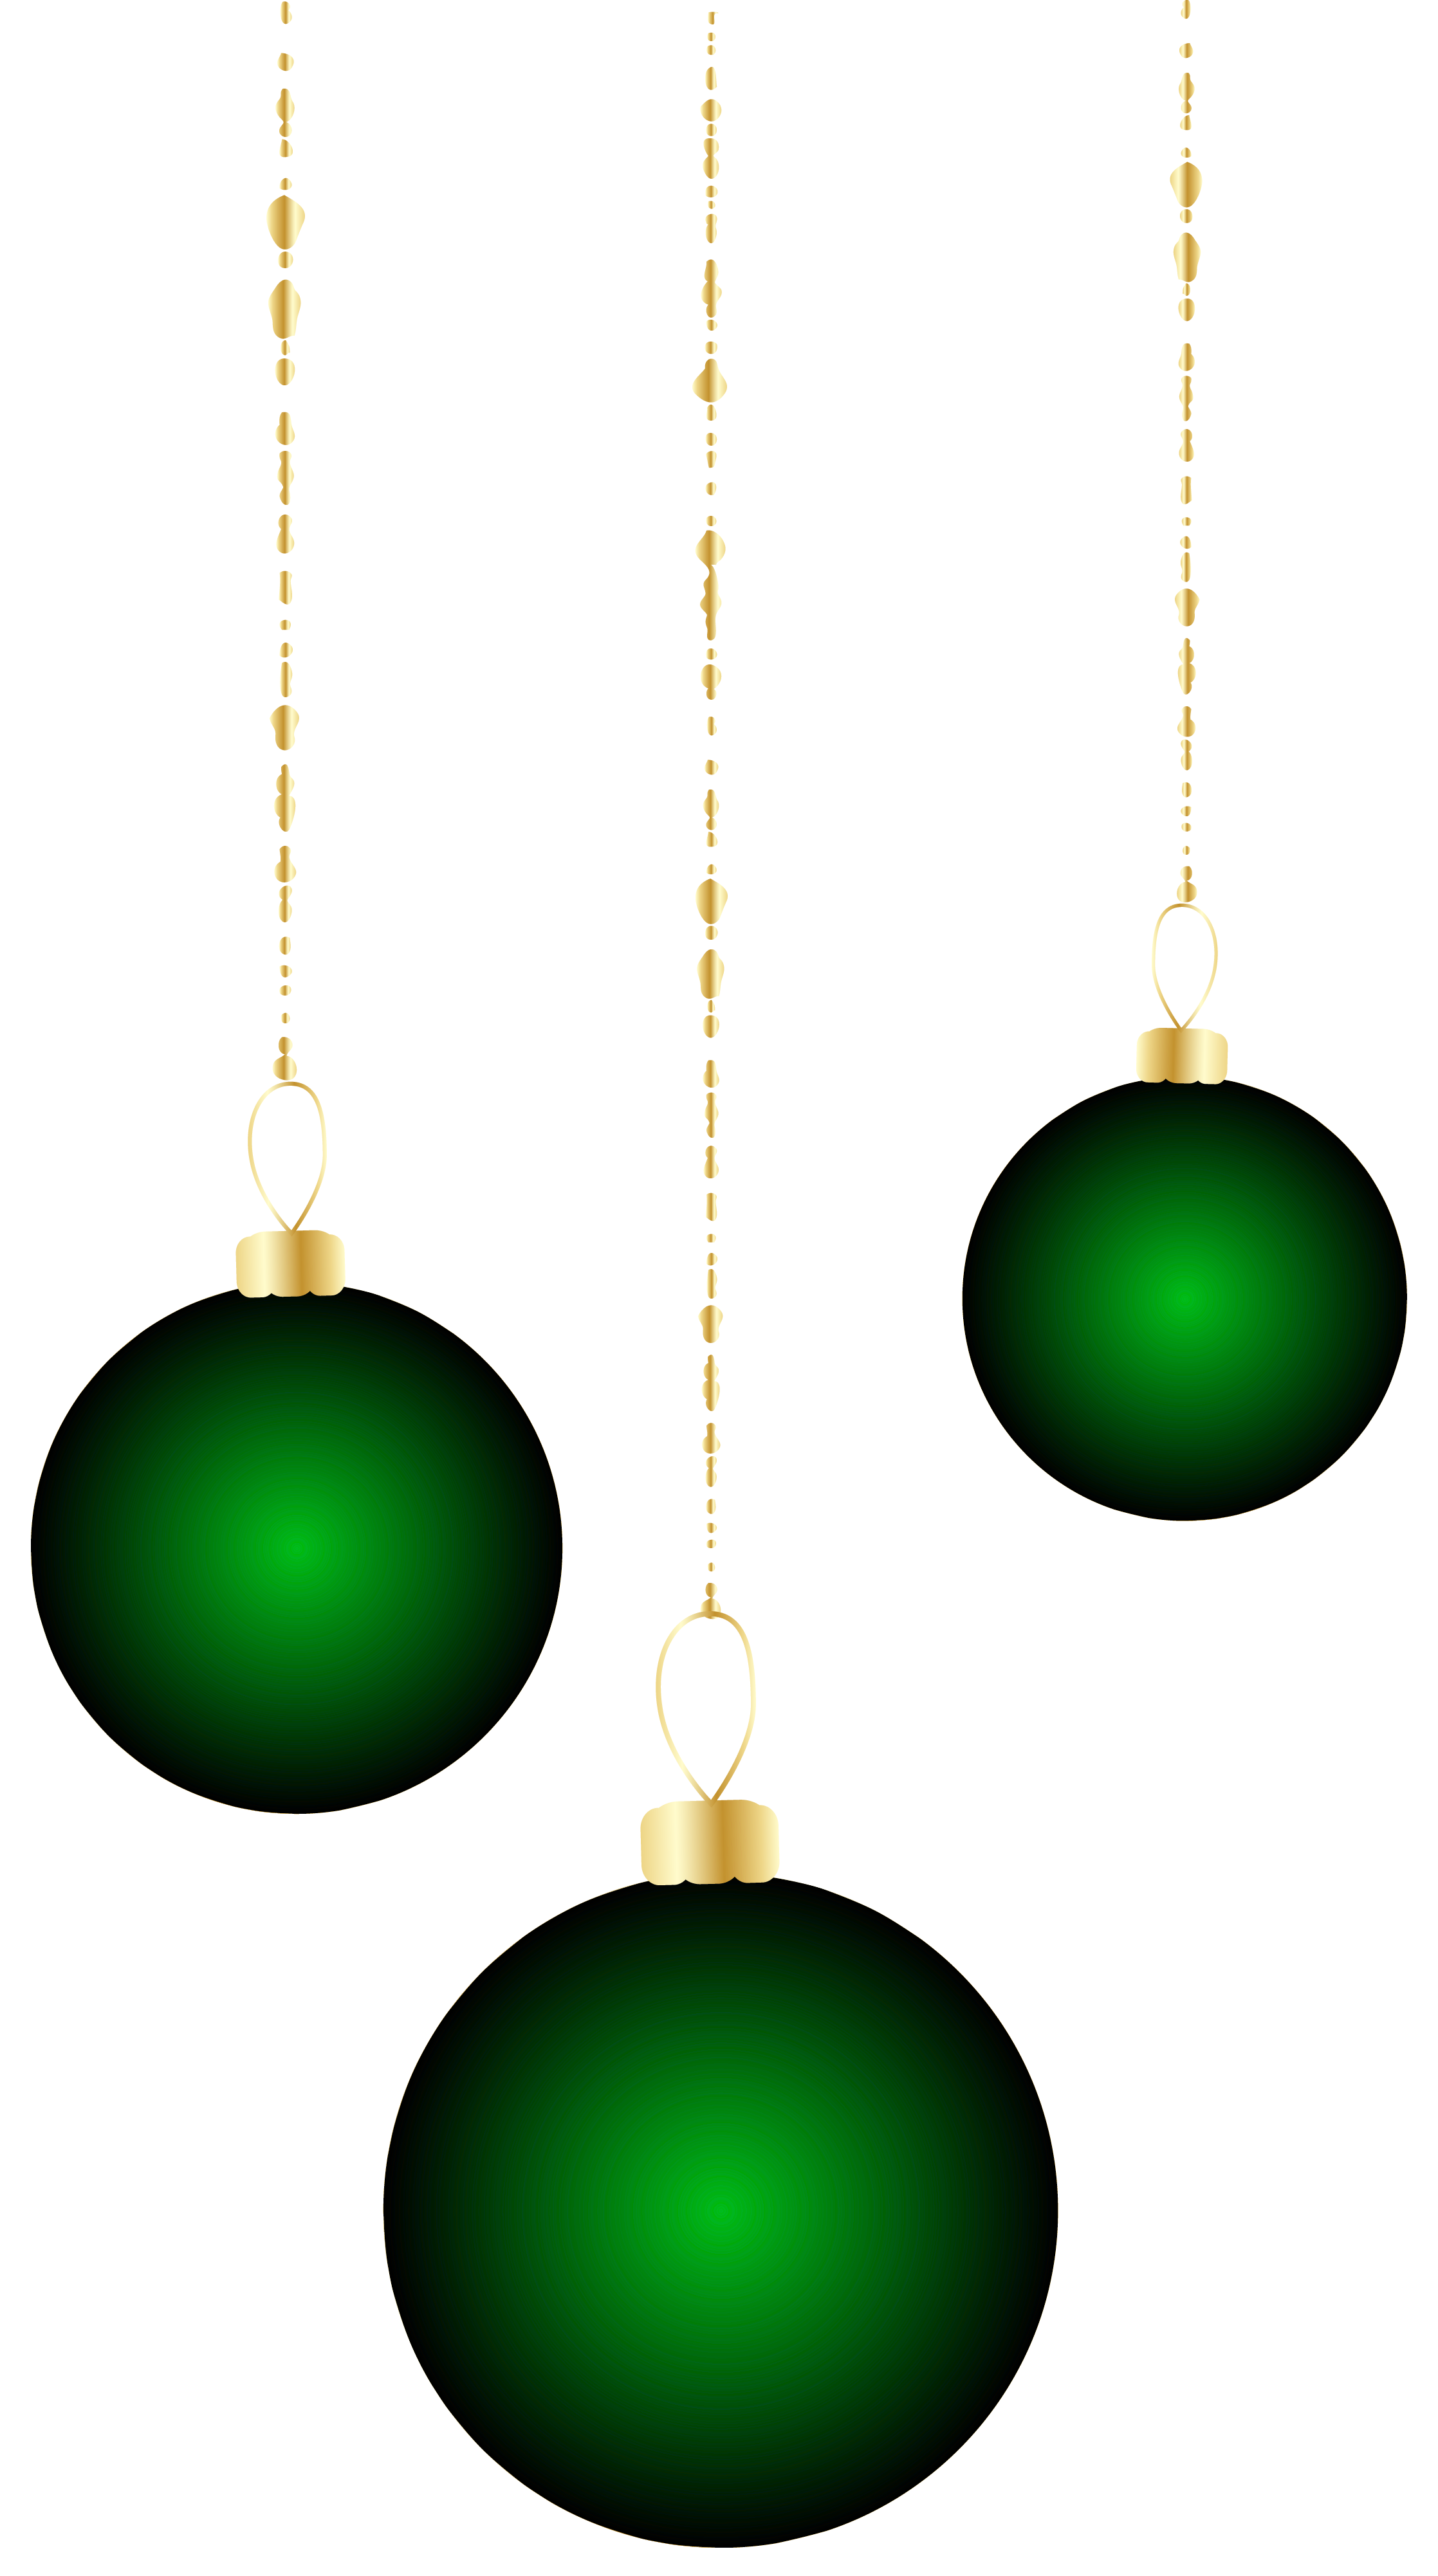 Transparent Christmas Green Ornaments PNG Clipart | Gallery ... svg download